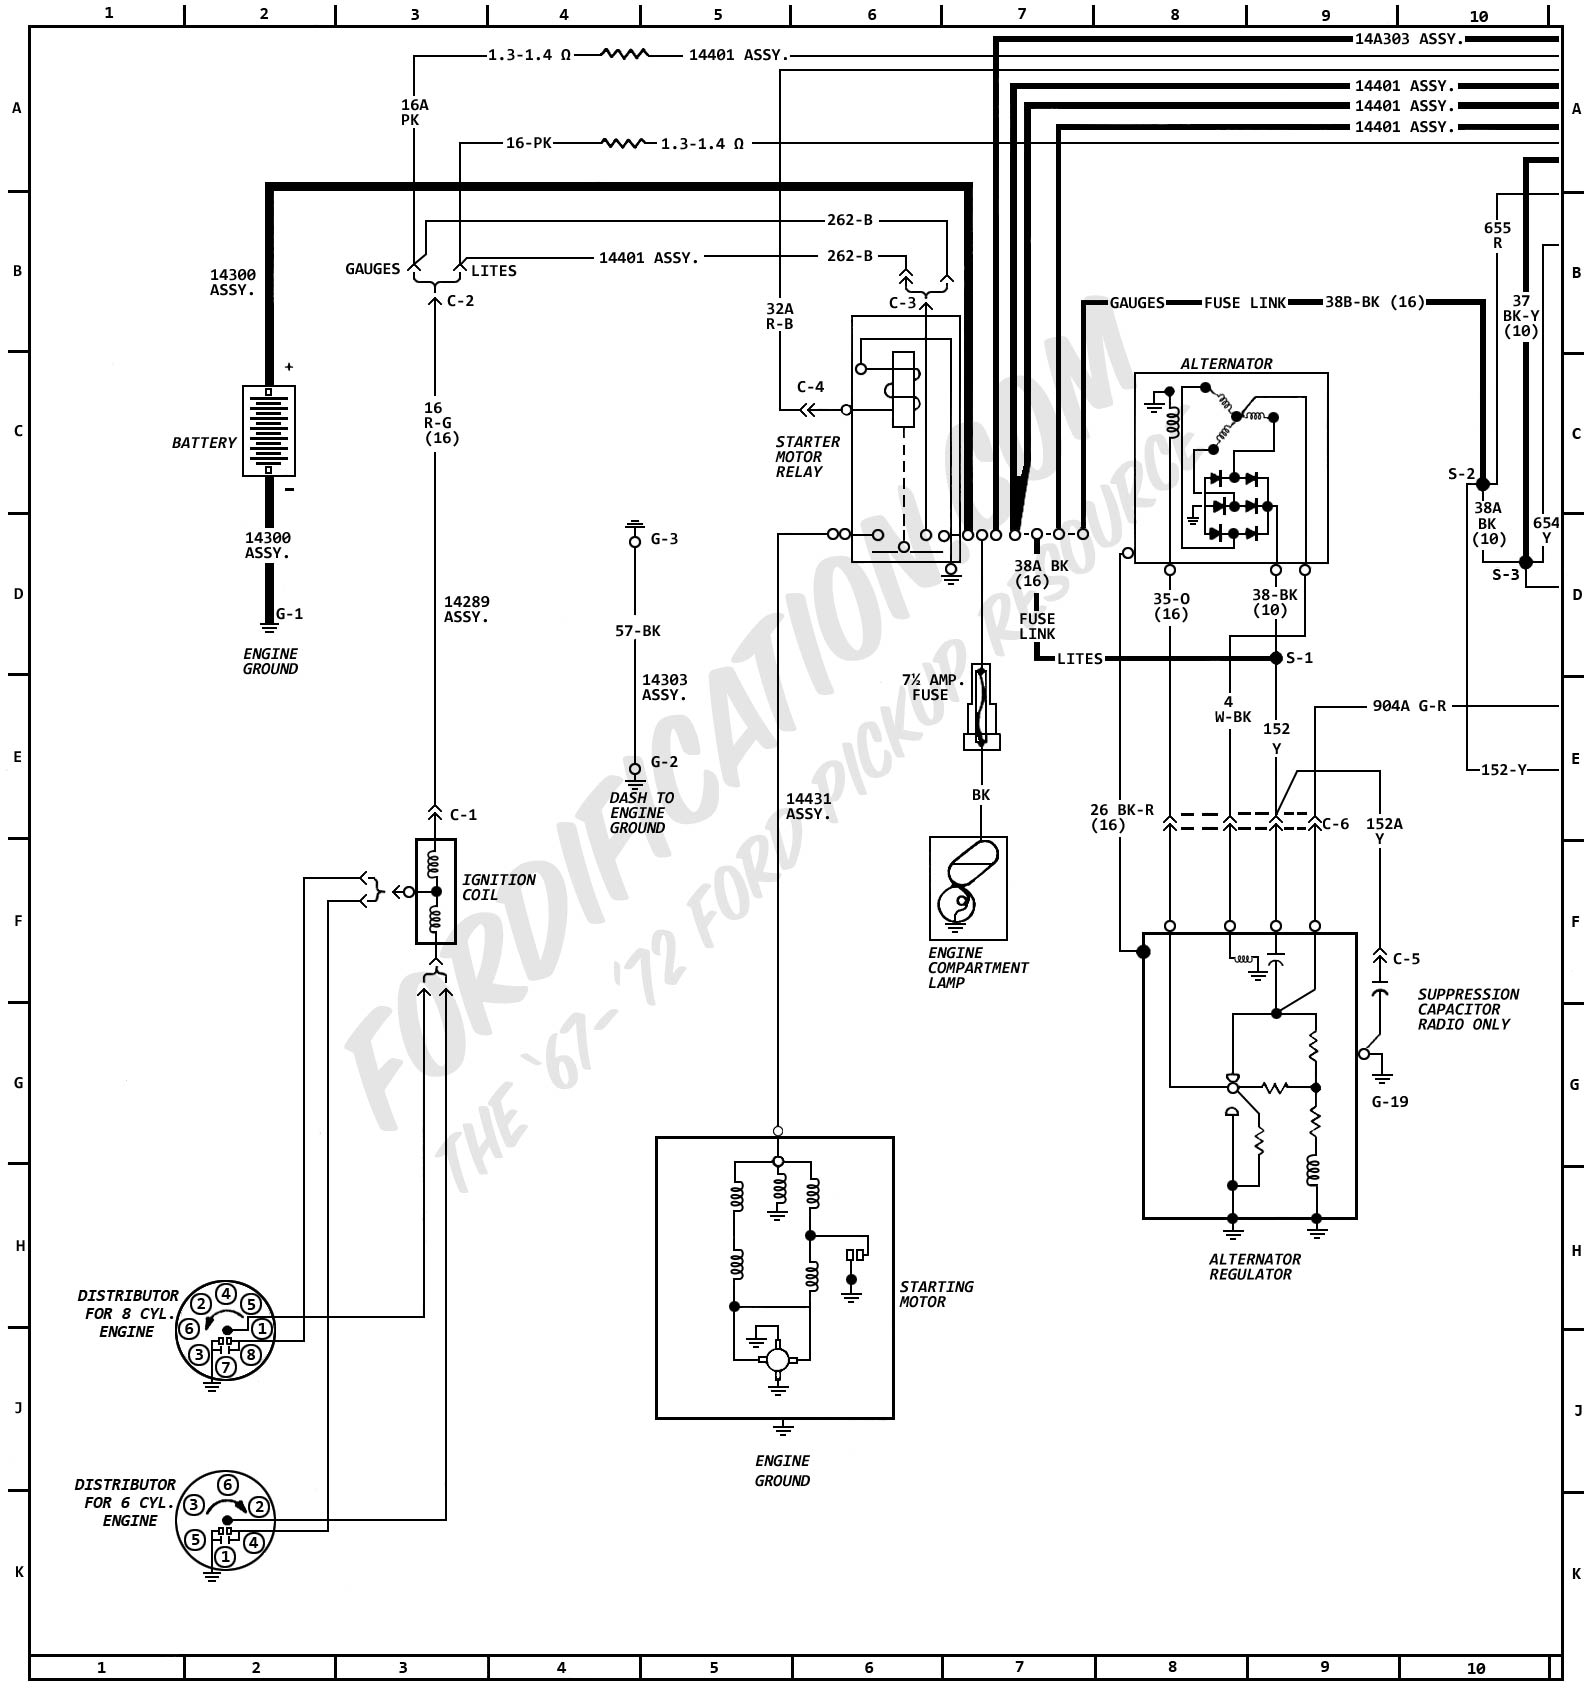 1985 ford f 250 super duty wiring diagram wiring schematics diagram rh enr  green com 1984 Ford F-250 1986 Ford F-250